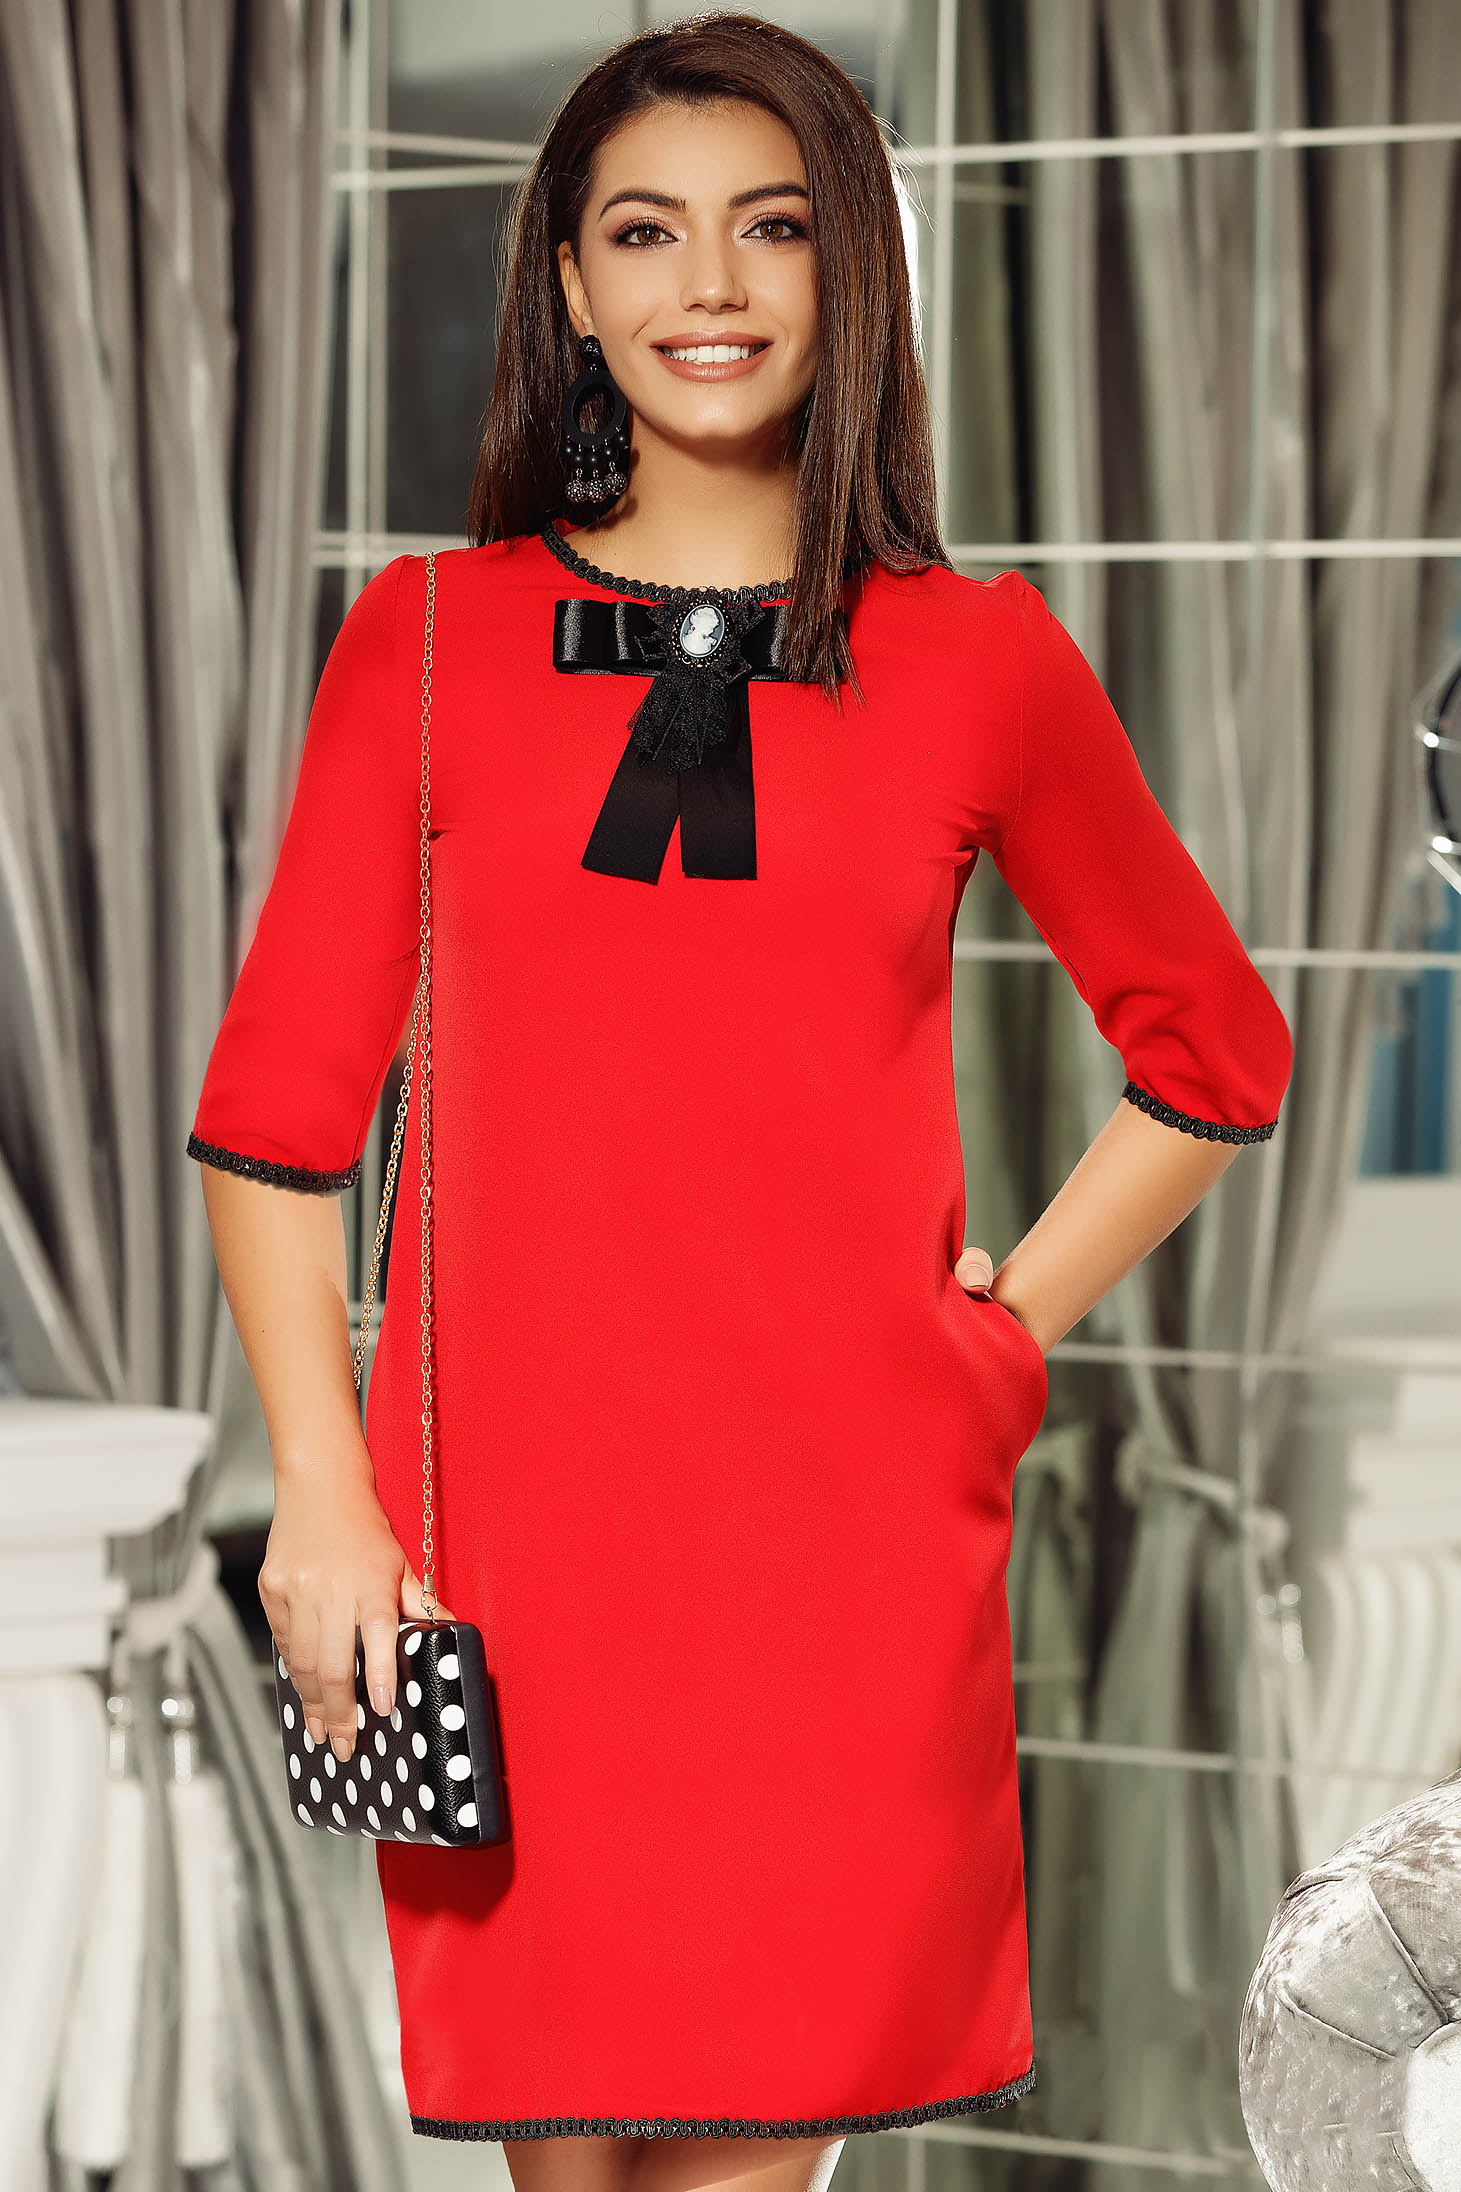 Fofy red elegant a-line dress bow accessory